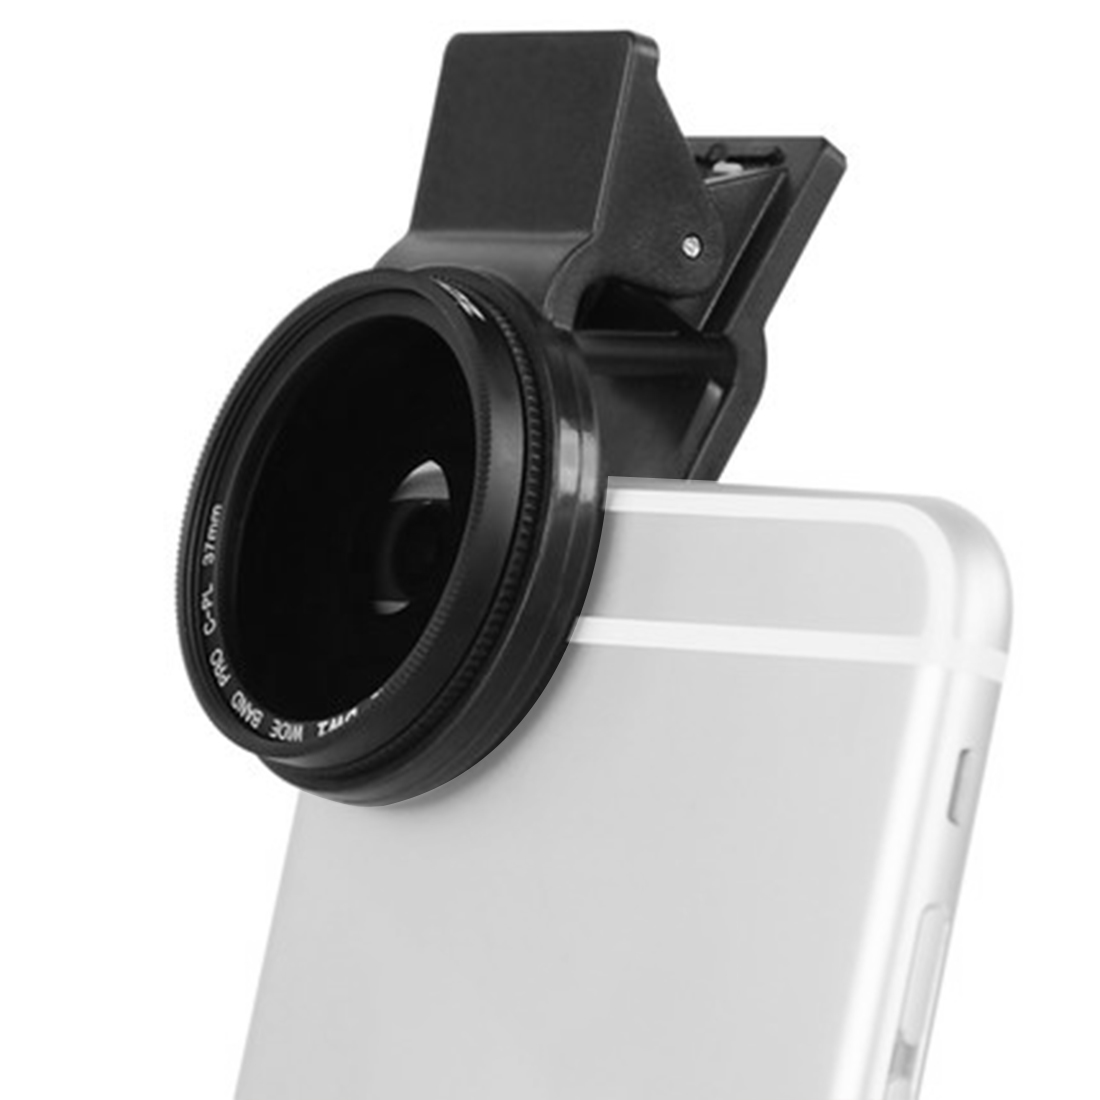 ZOMEI 37MM Professional Phone Camera Circular Polarizer CPL Lens for iPhone 7 6S Plus Samsung Galaxy Huawei HTC Windows Android|Camera Filters| |  - title=